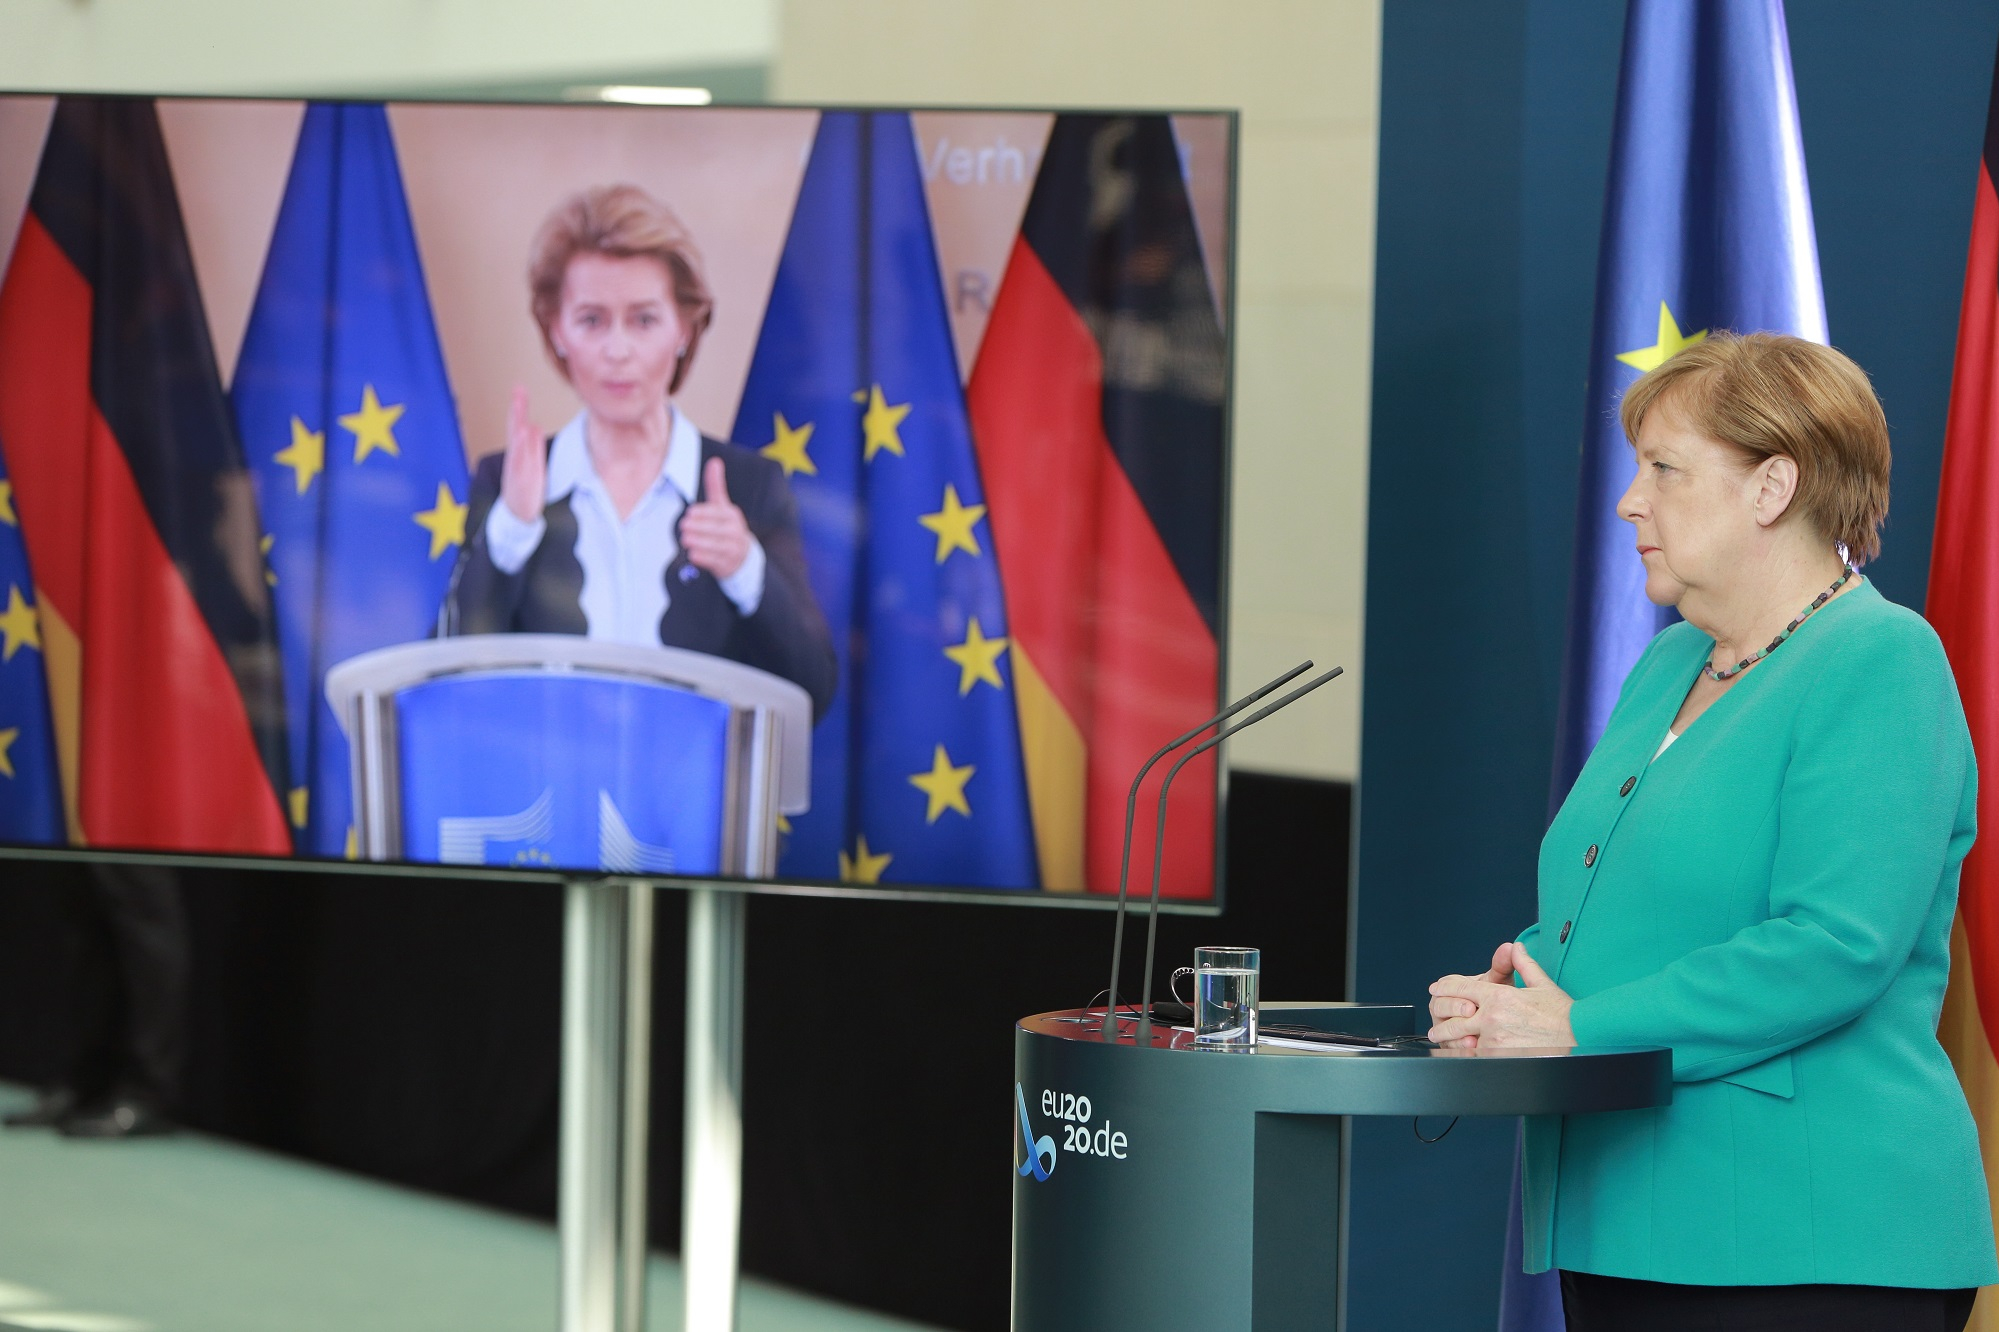 A photograph of  German Chancellor Angela Merkel and European Commission President Ursula von der Leyen (via live video transmission) speak to the media following talks at the Chancellery on July 2, 2020 in Berlin, Germany.